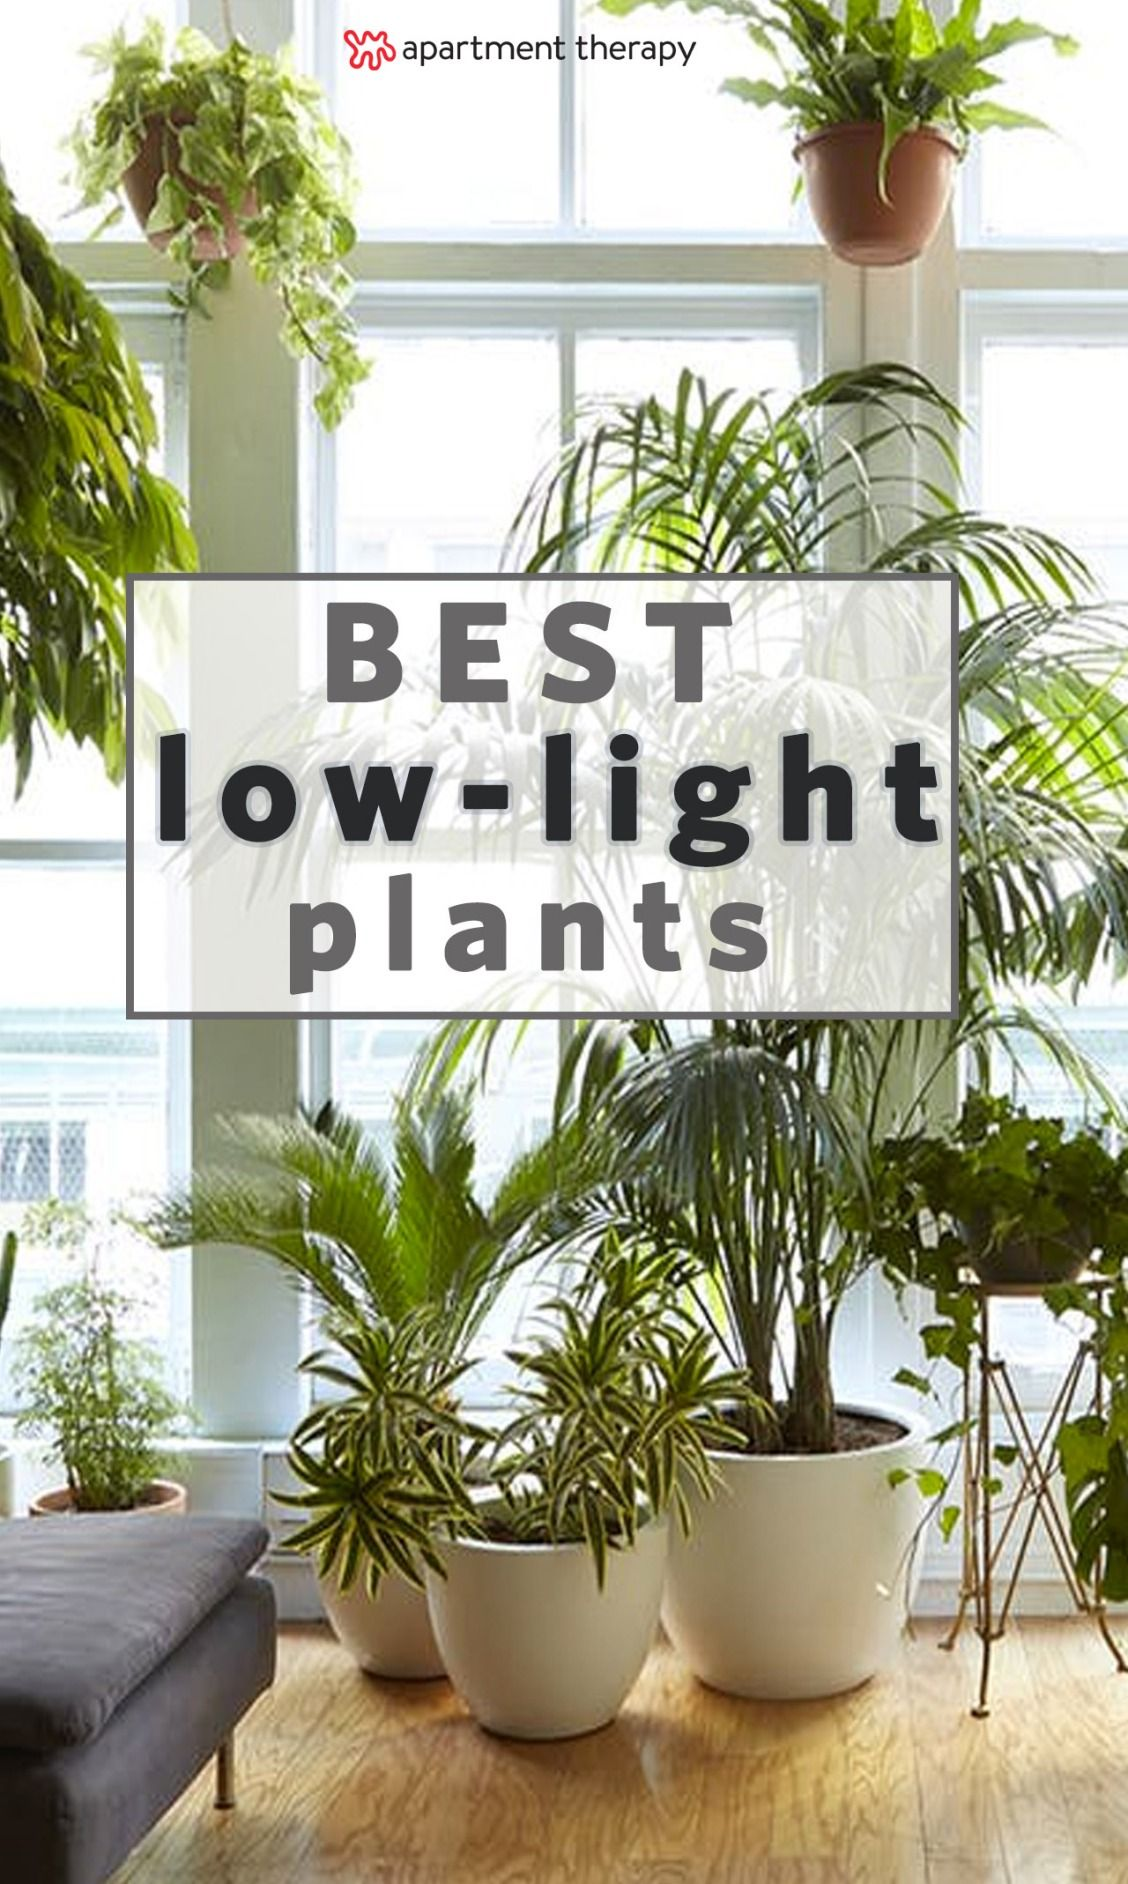 Best Indoor Plants Low Light 8 Houseplants That Can Survive Urban Apartments Low Light